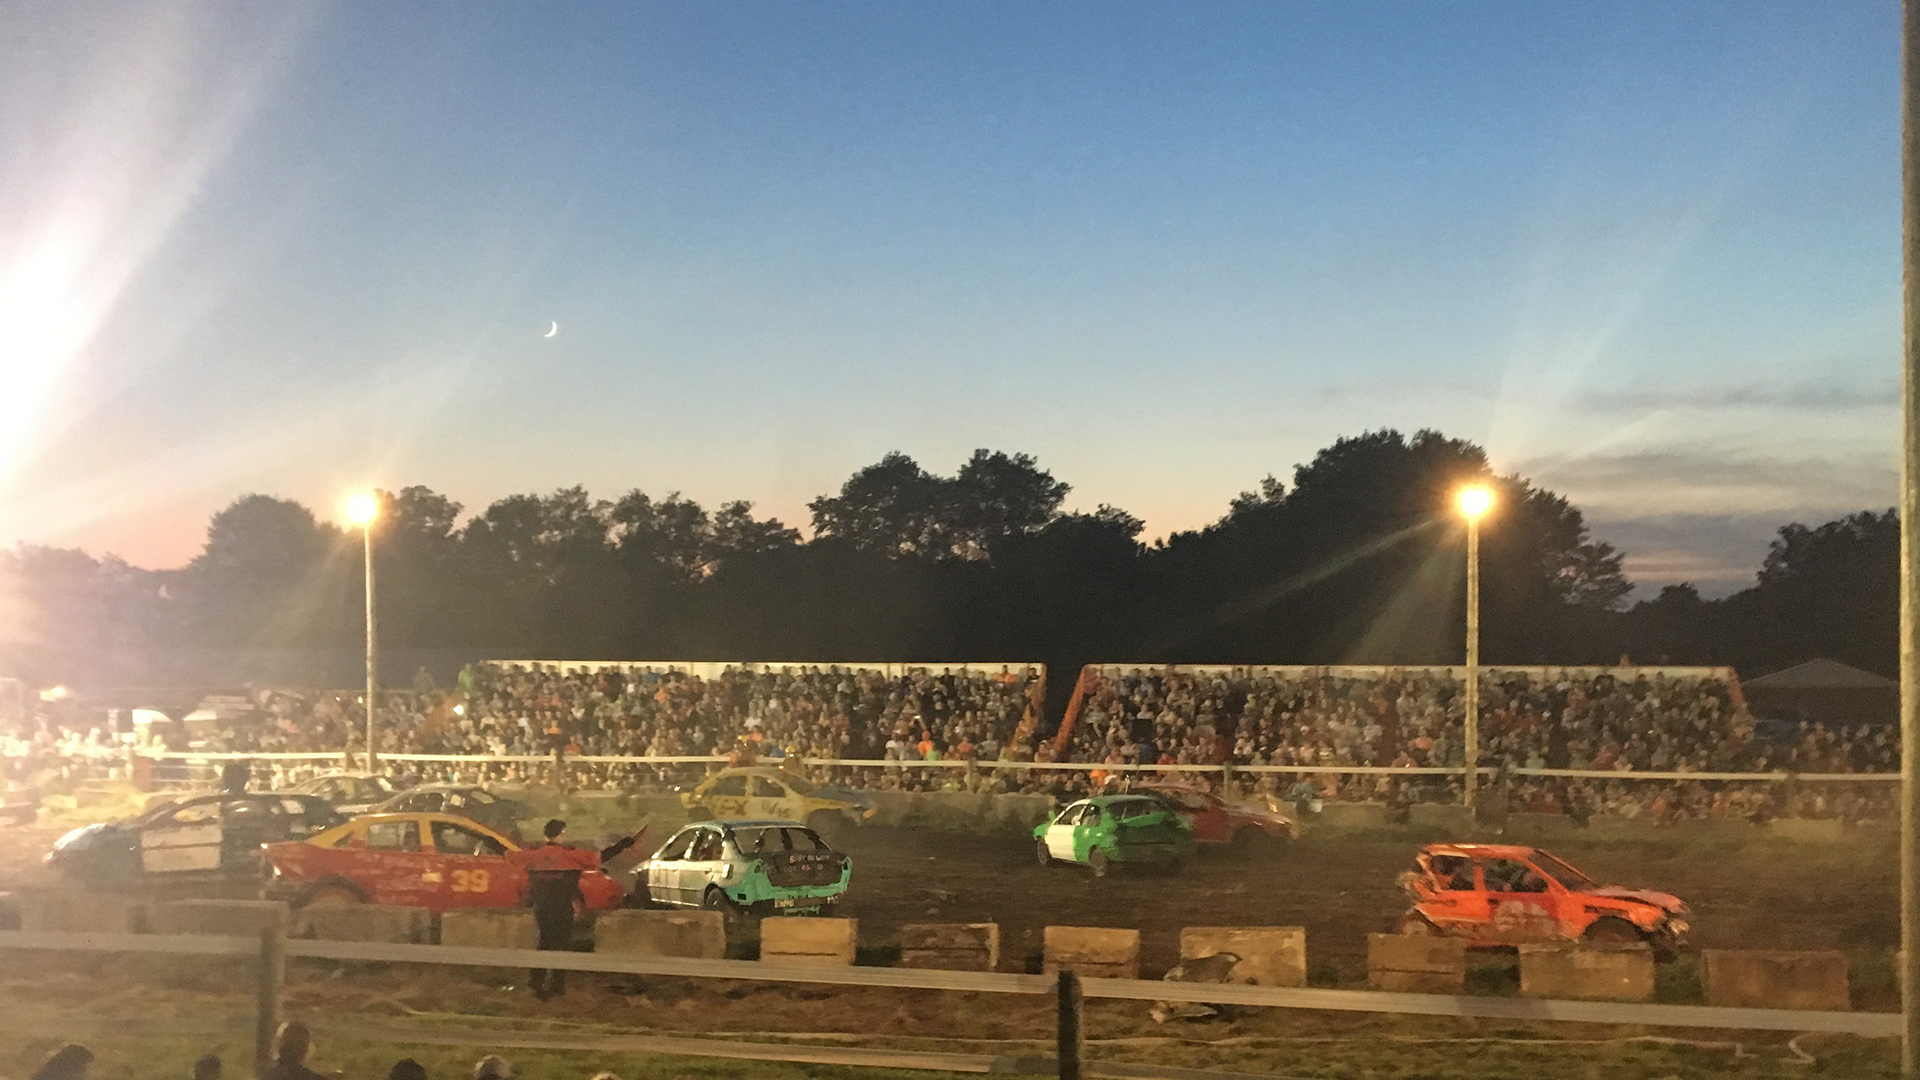 Demolition Derby - September Events You Don't Want To Miss!